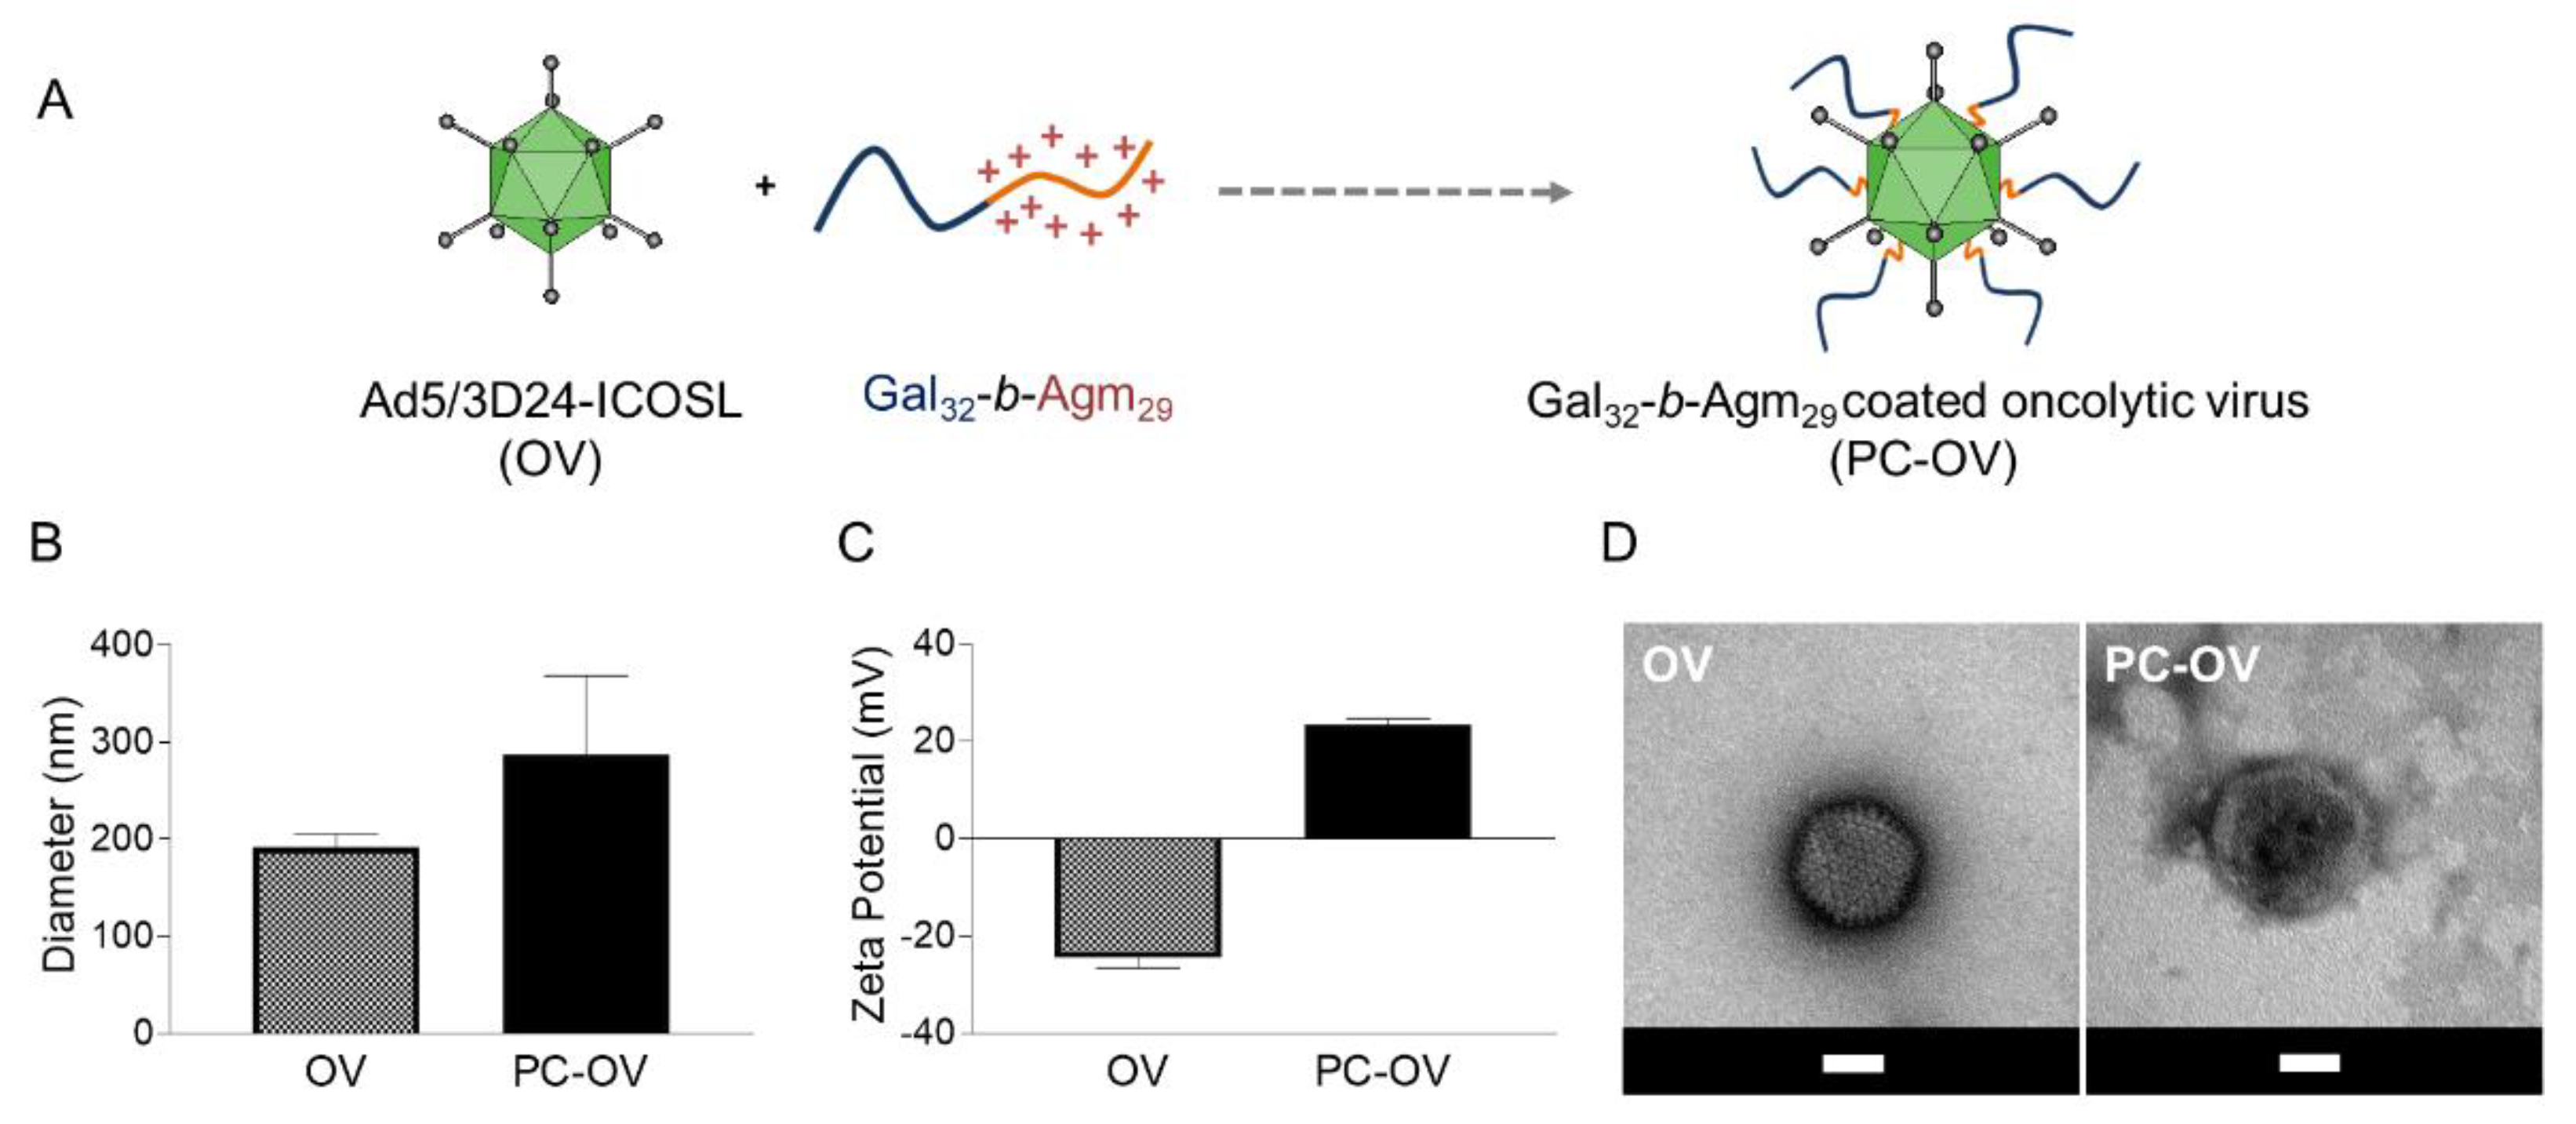 Selective infectivity by retargeted virus. SUIT2 and HUVE